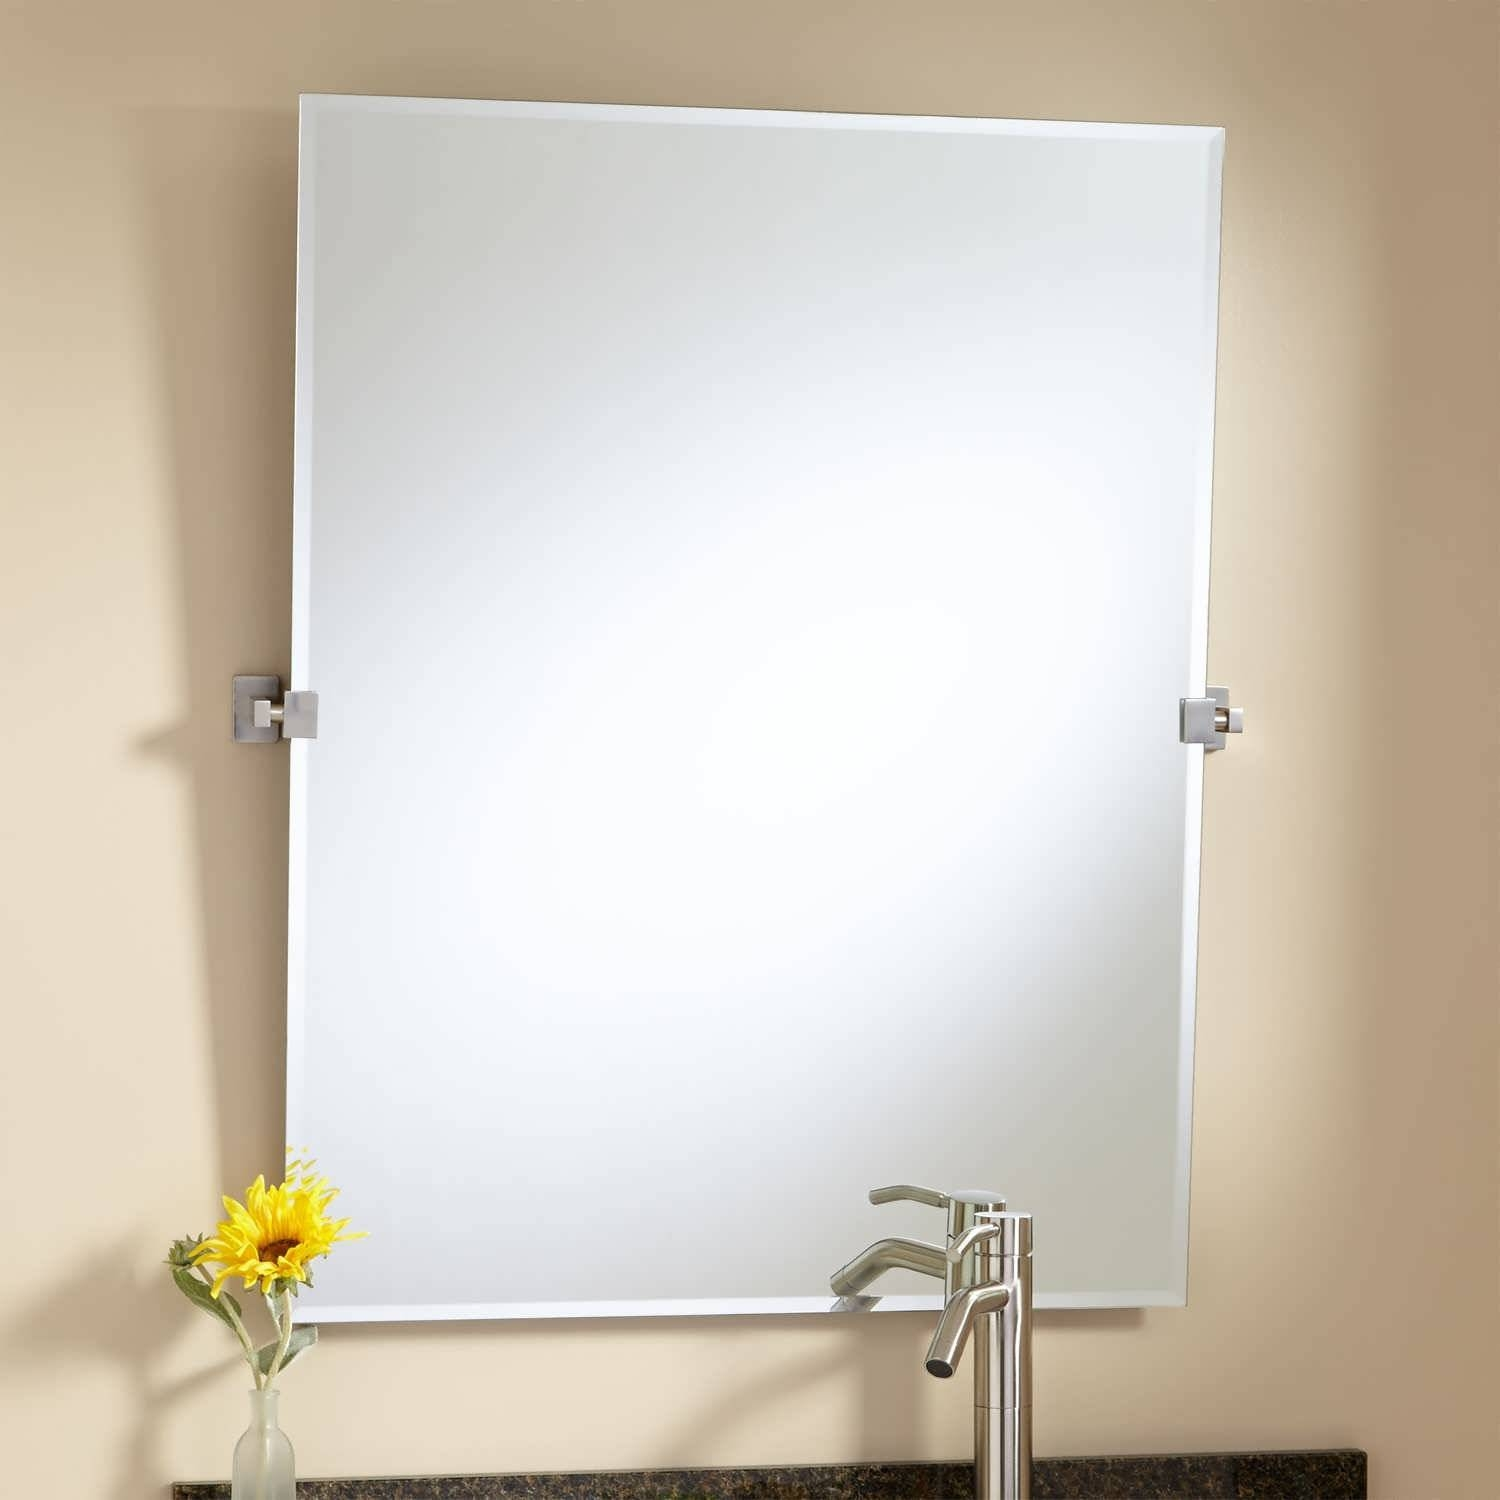 Bathroom Unusual Mirrors Bedroom 24X60 Mirror Pertaining To For Bathrooms